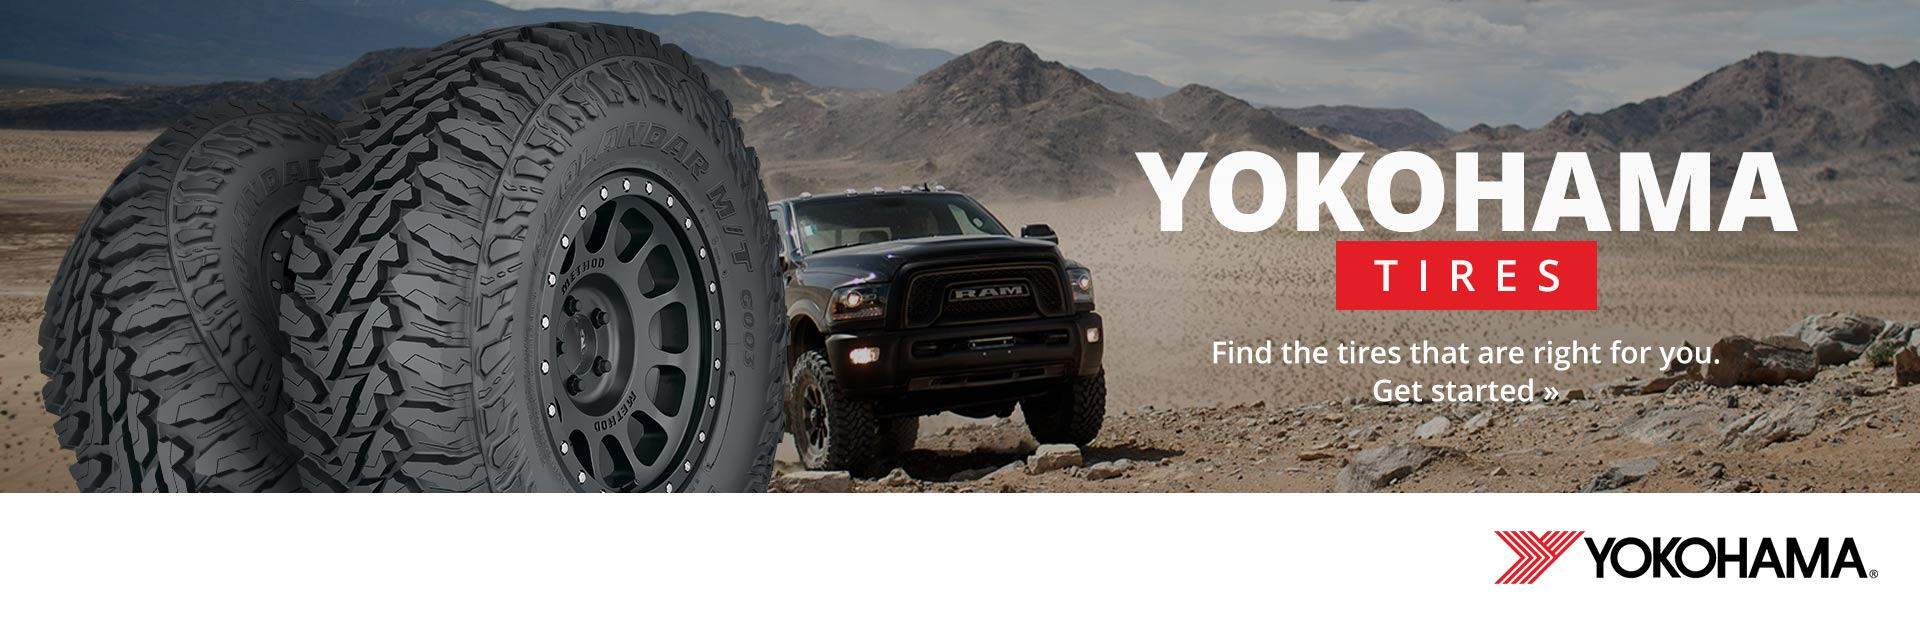 Yokohama Tires: Click here to find the tires right for you.